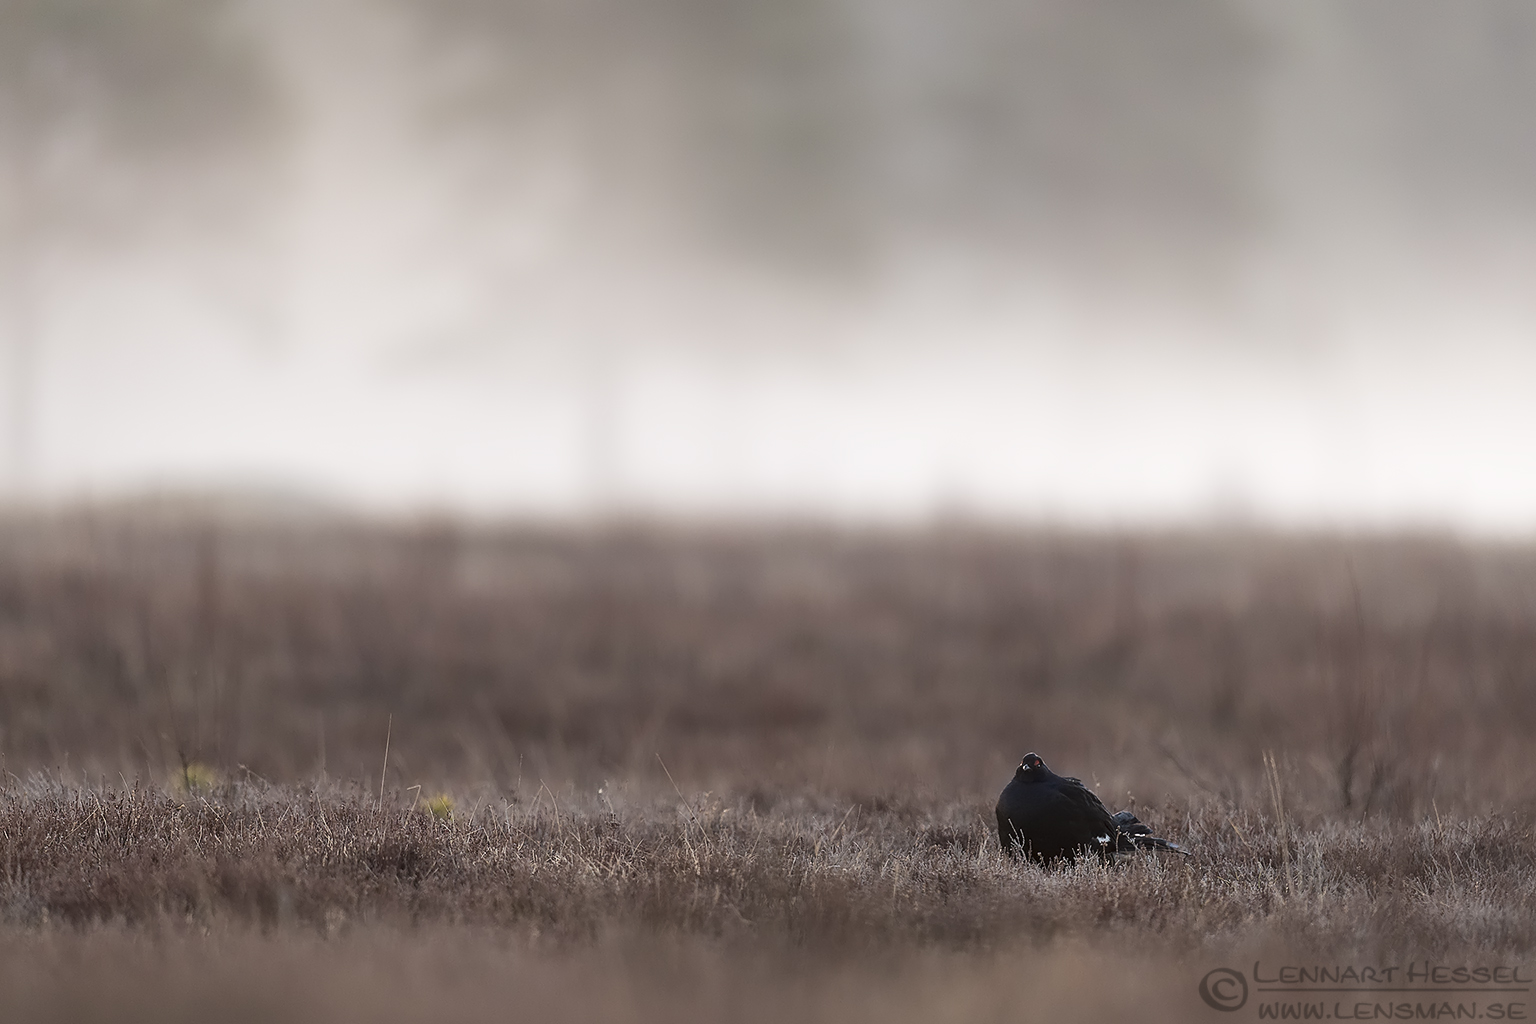 Black Grouse lek Lake Hornborga